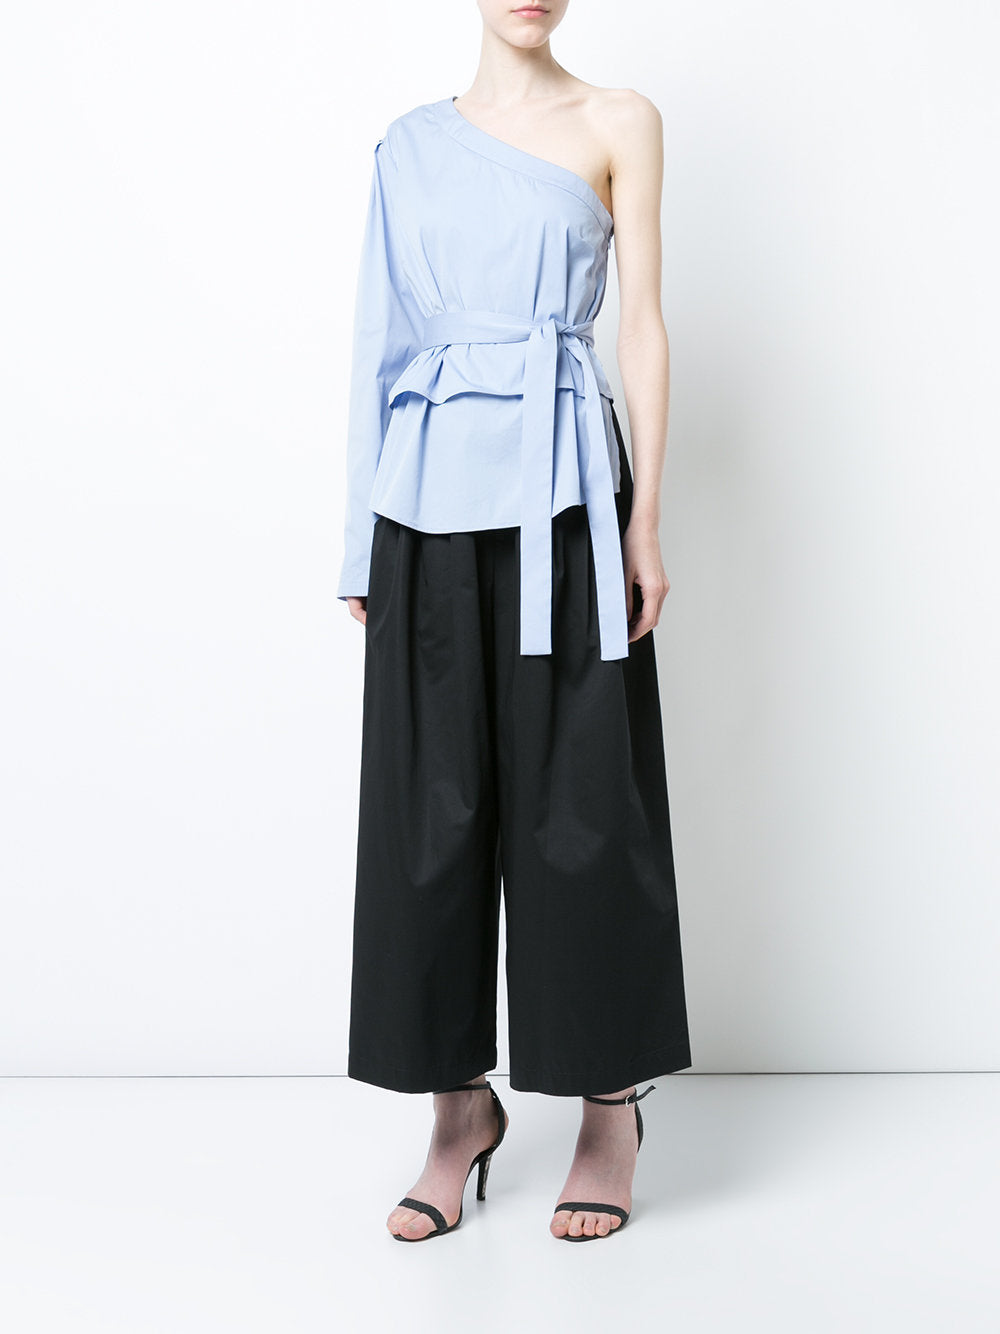 One Shoulder Top with Sleeve and Belt Tie